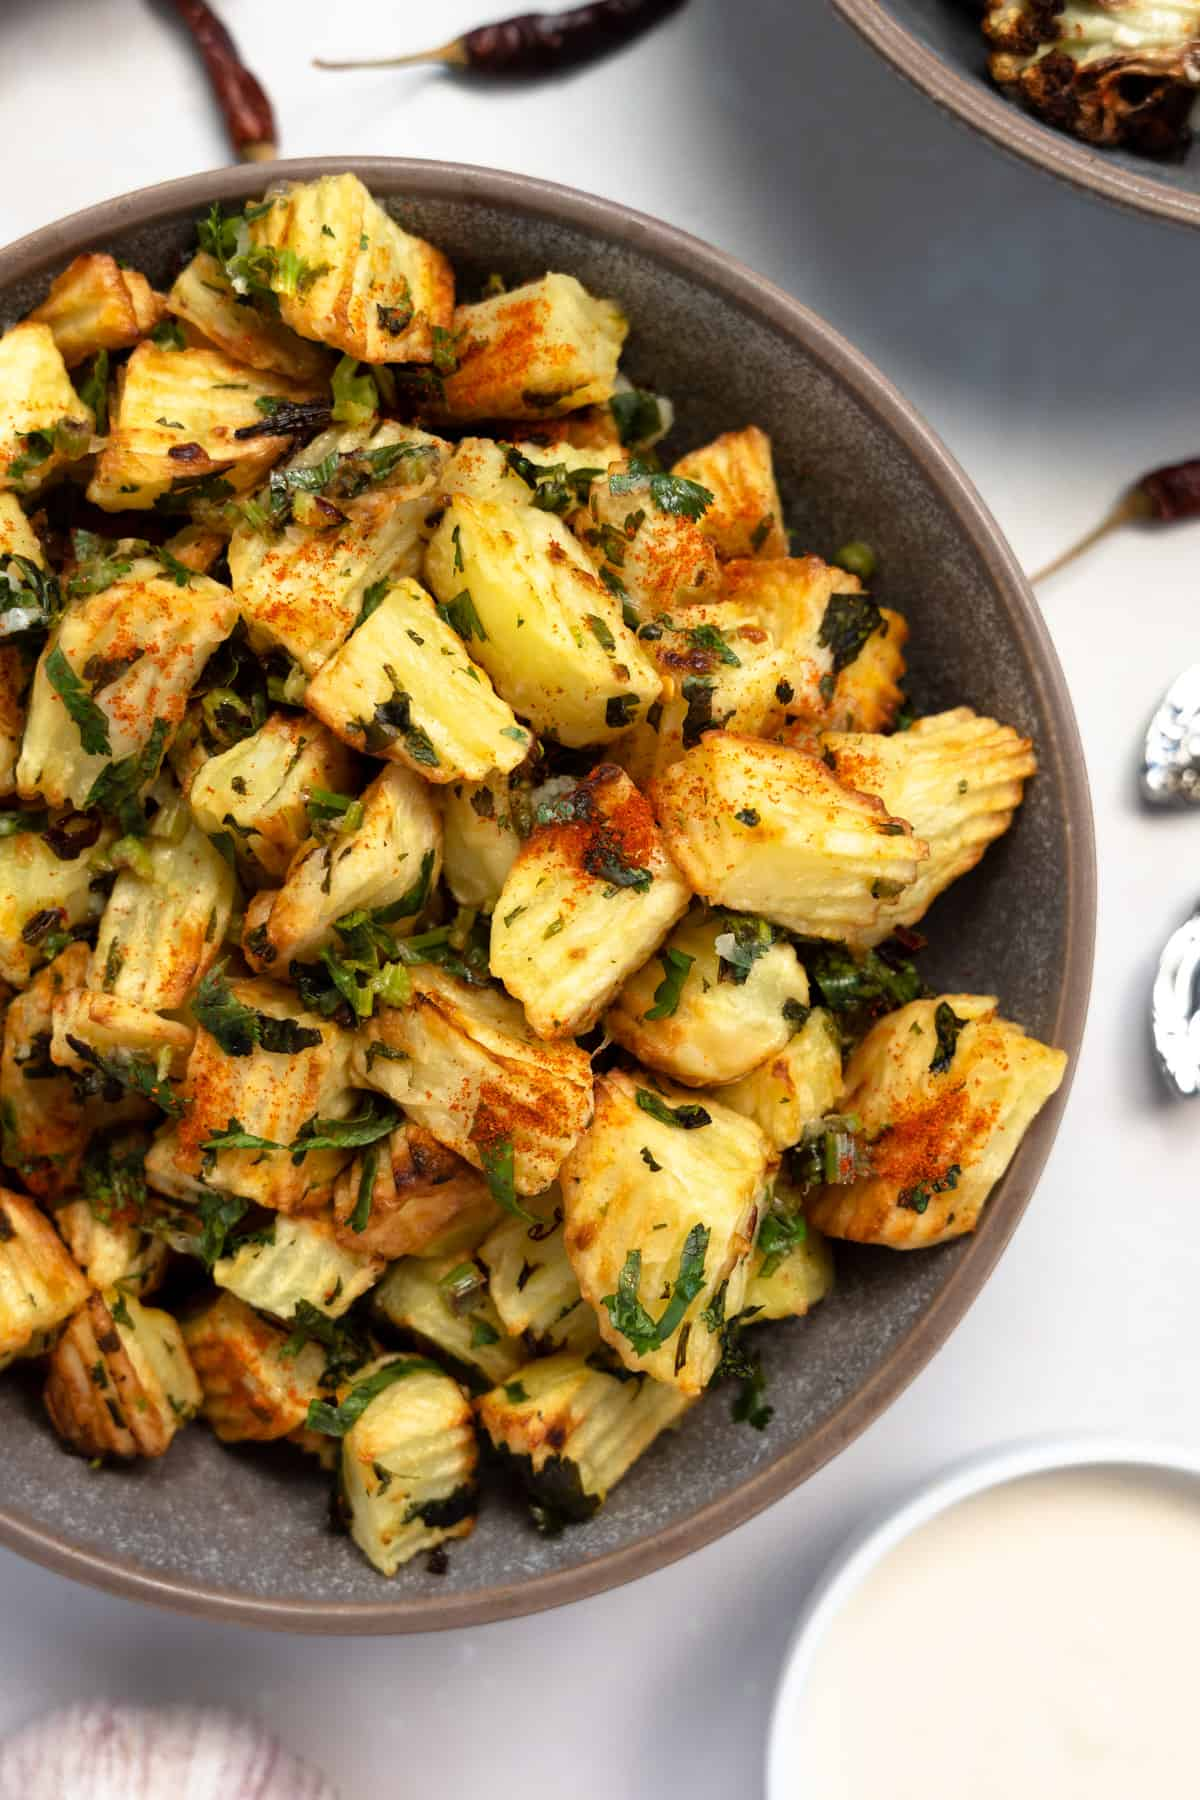 batata harra in a grey bowl with chillis on the side